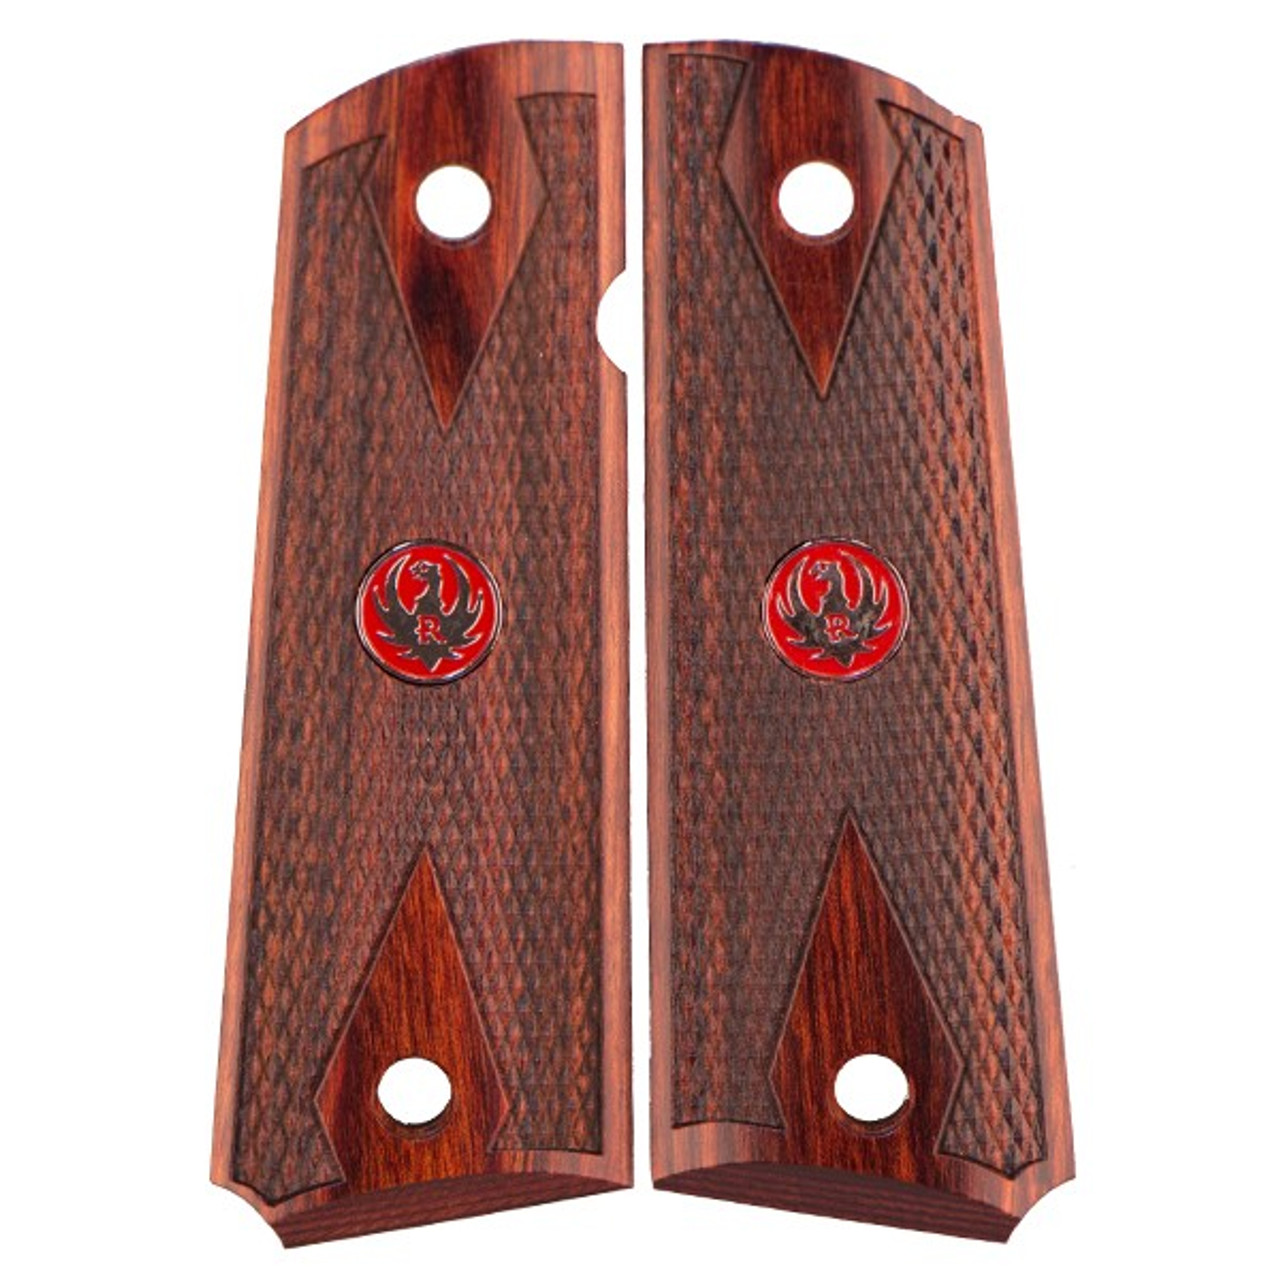 1911 Grips - Government / Full-Size - Double Diamond - Red Ruger Medallion  - Rosewood